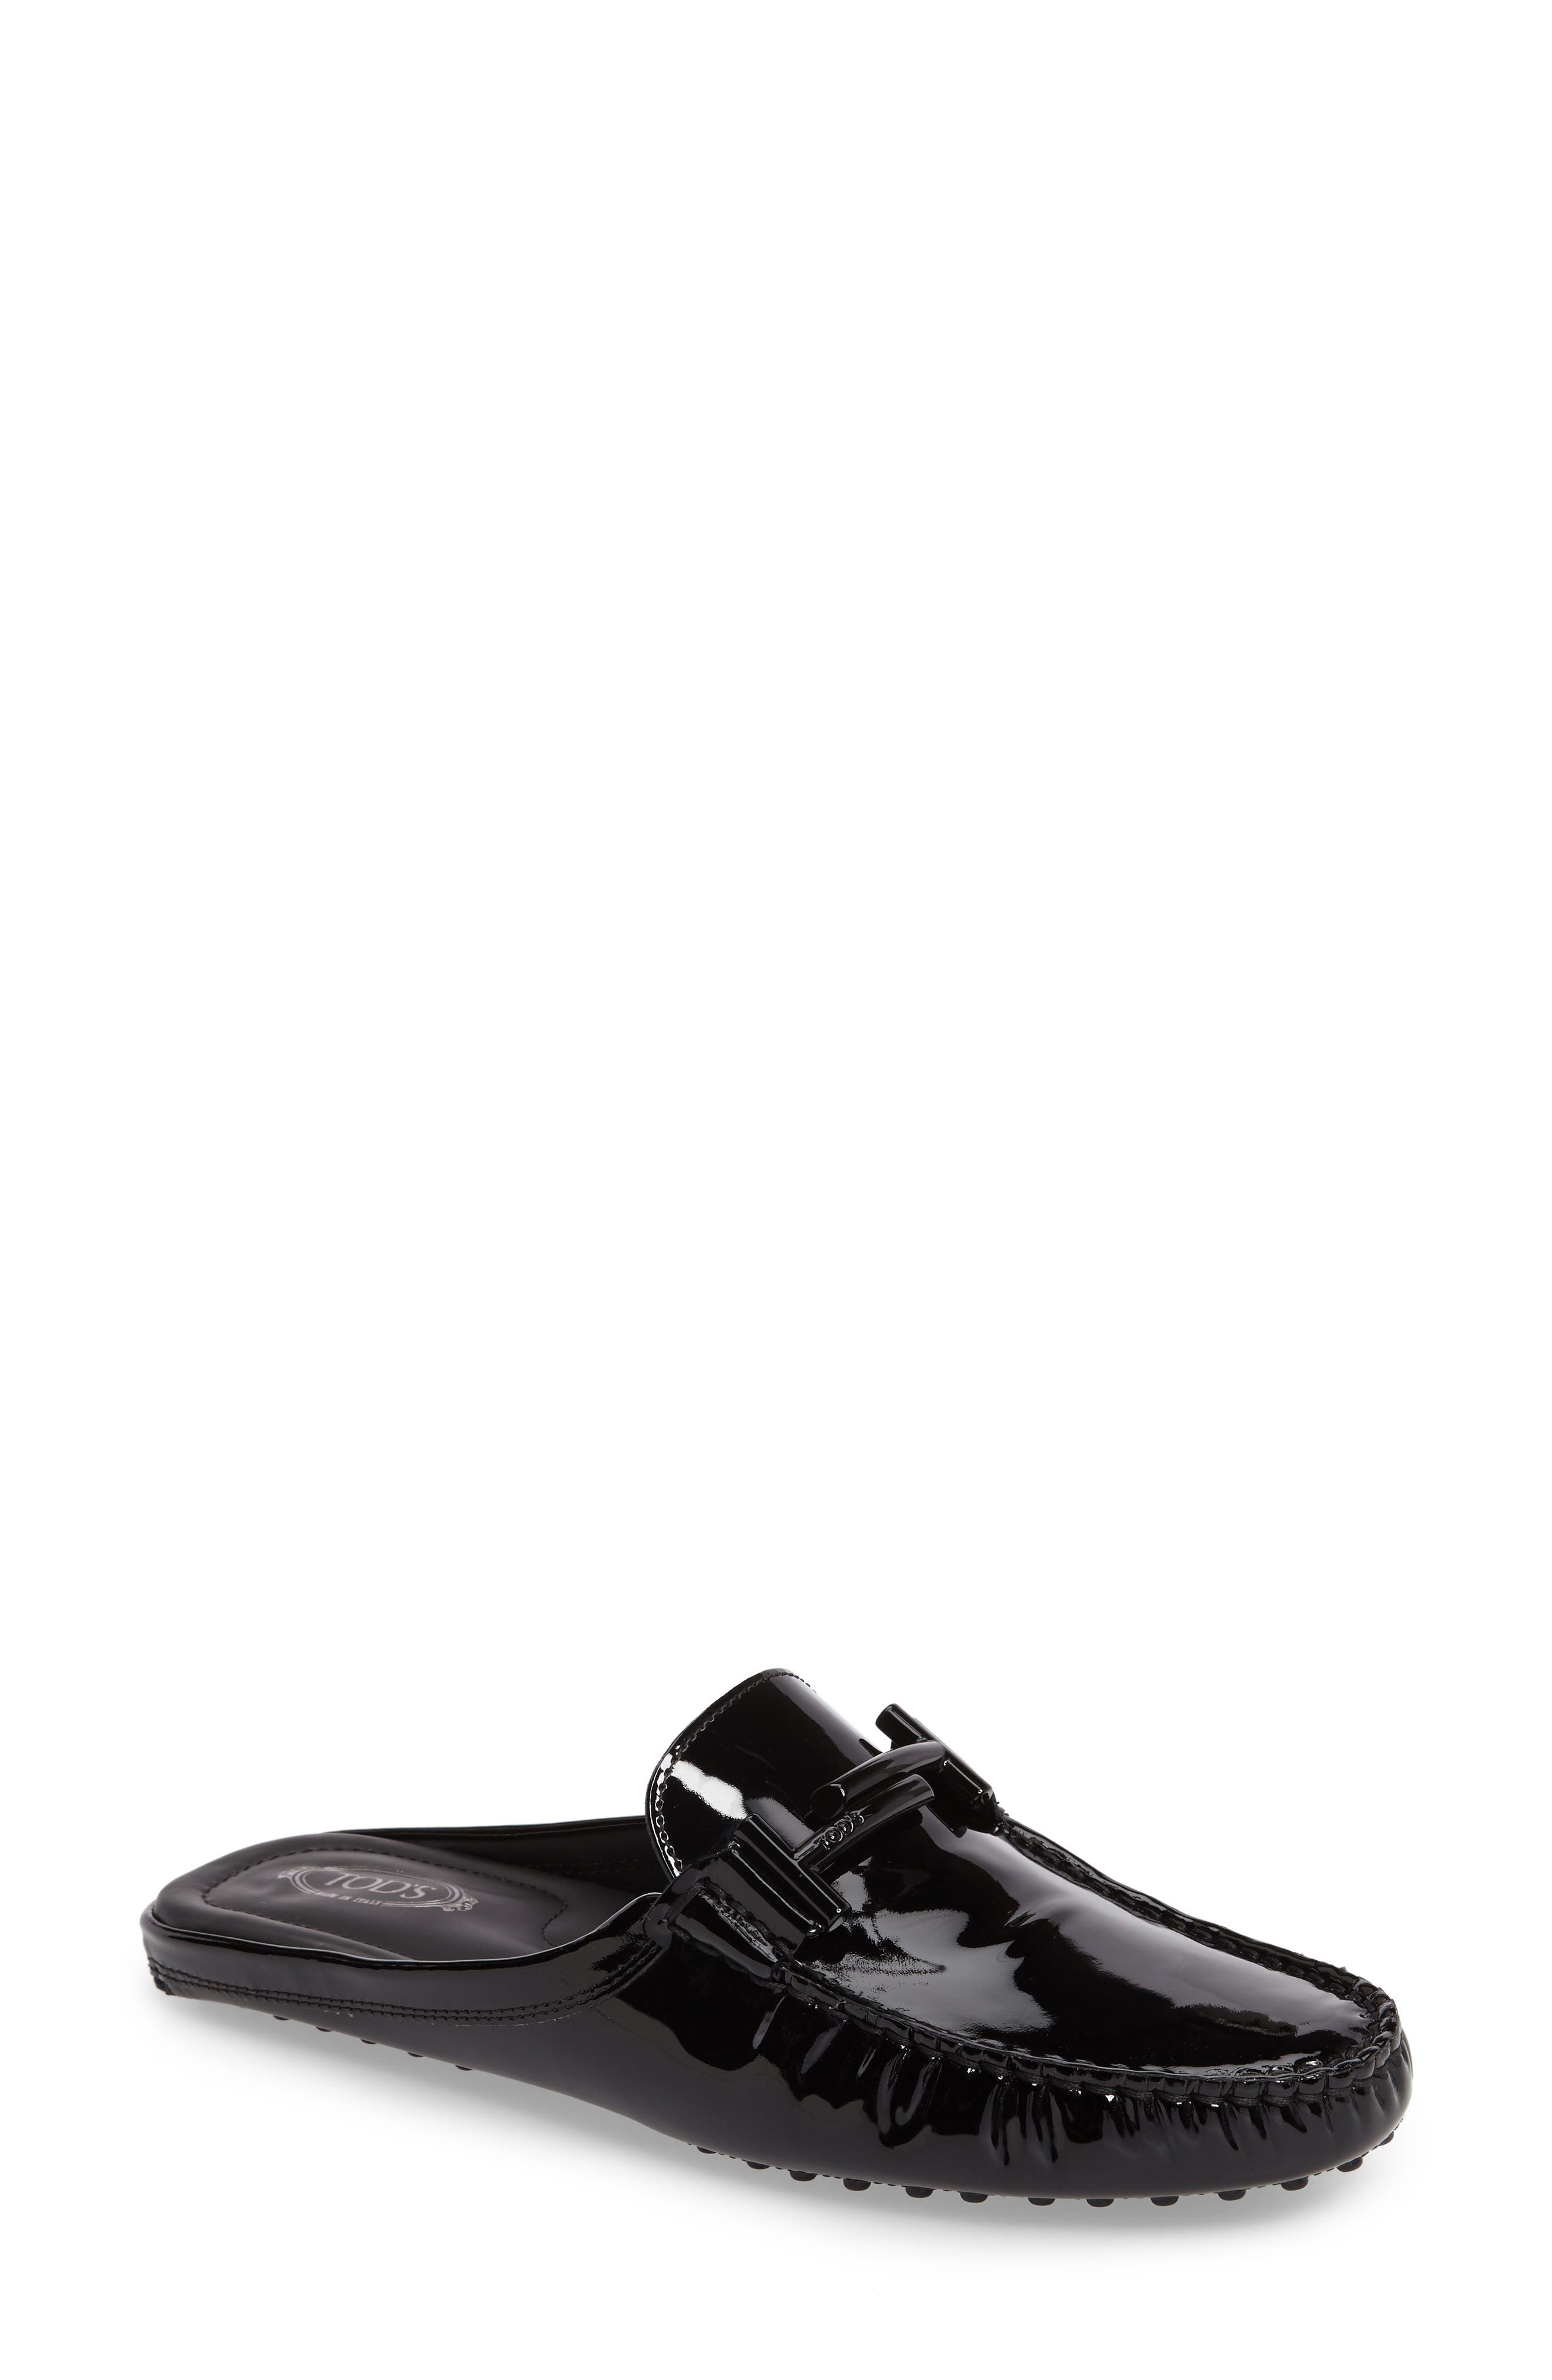 Gommino Double-T Loafer Mule,                         Main,                         color, Black Patent